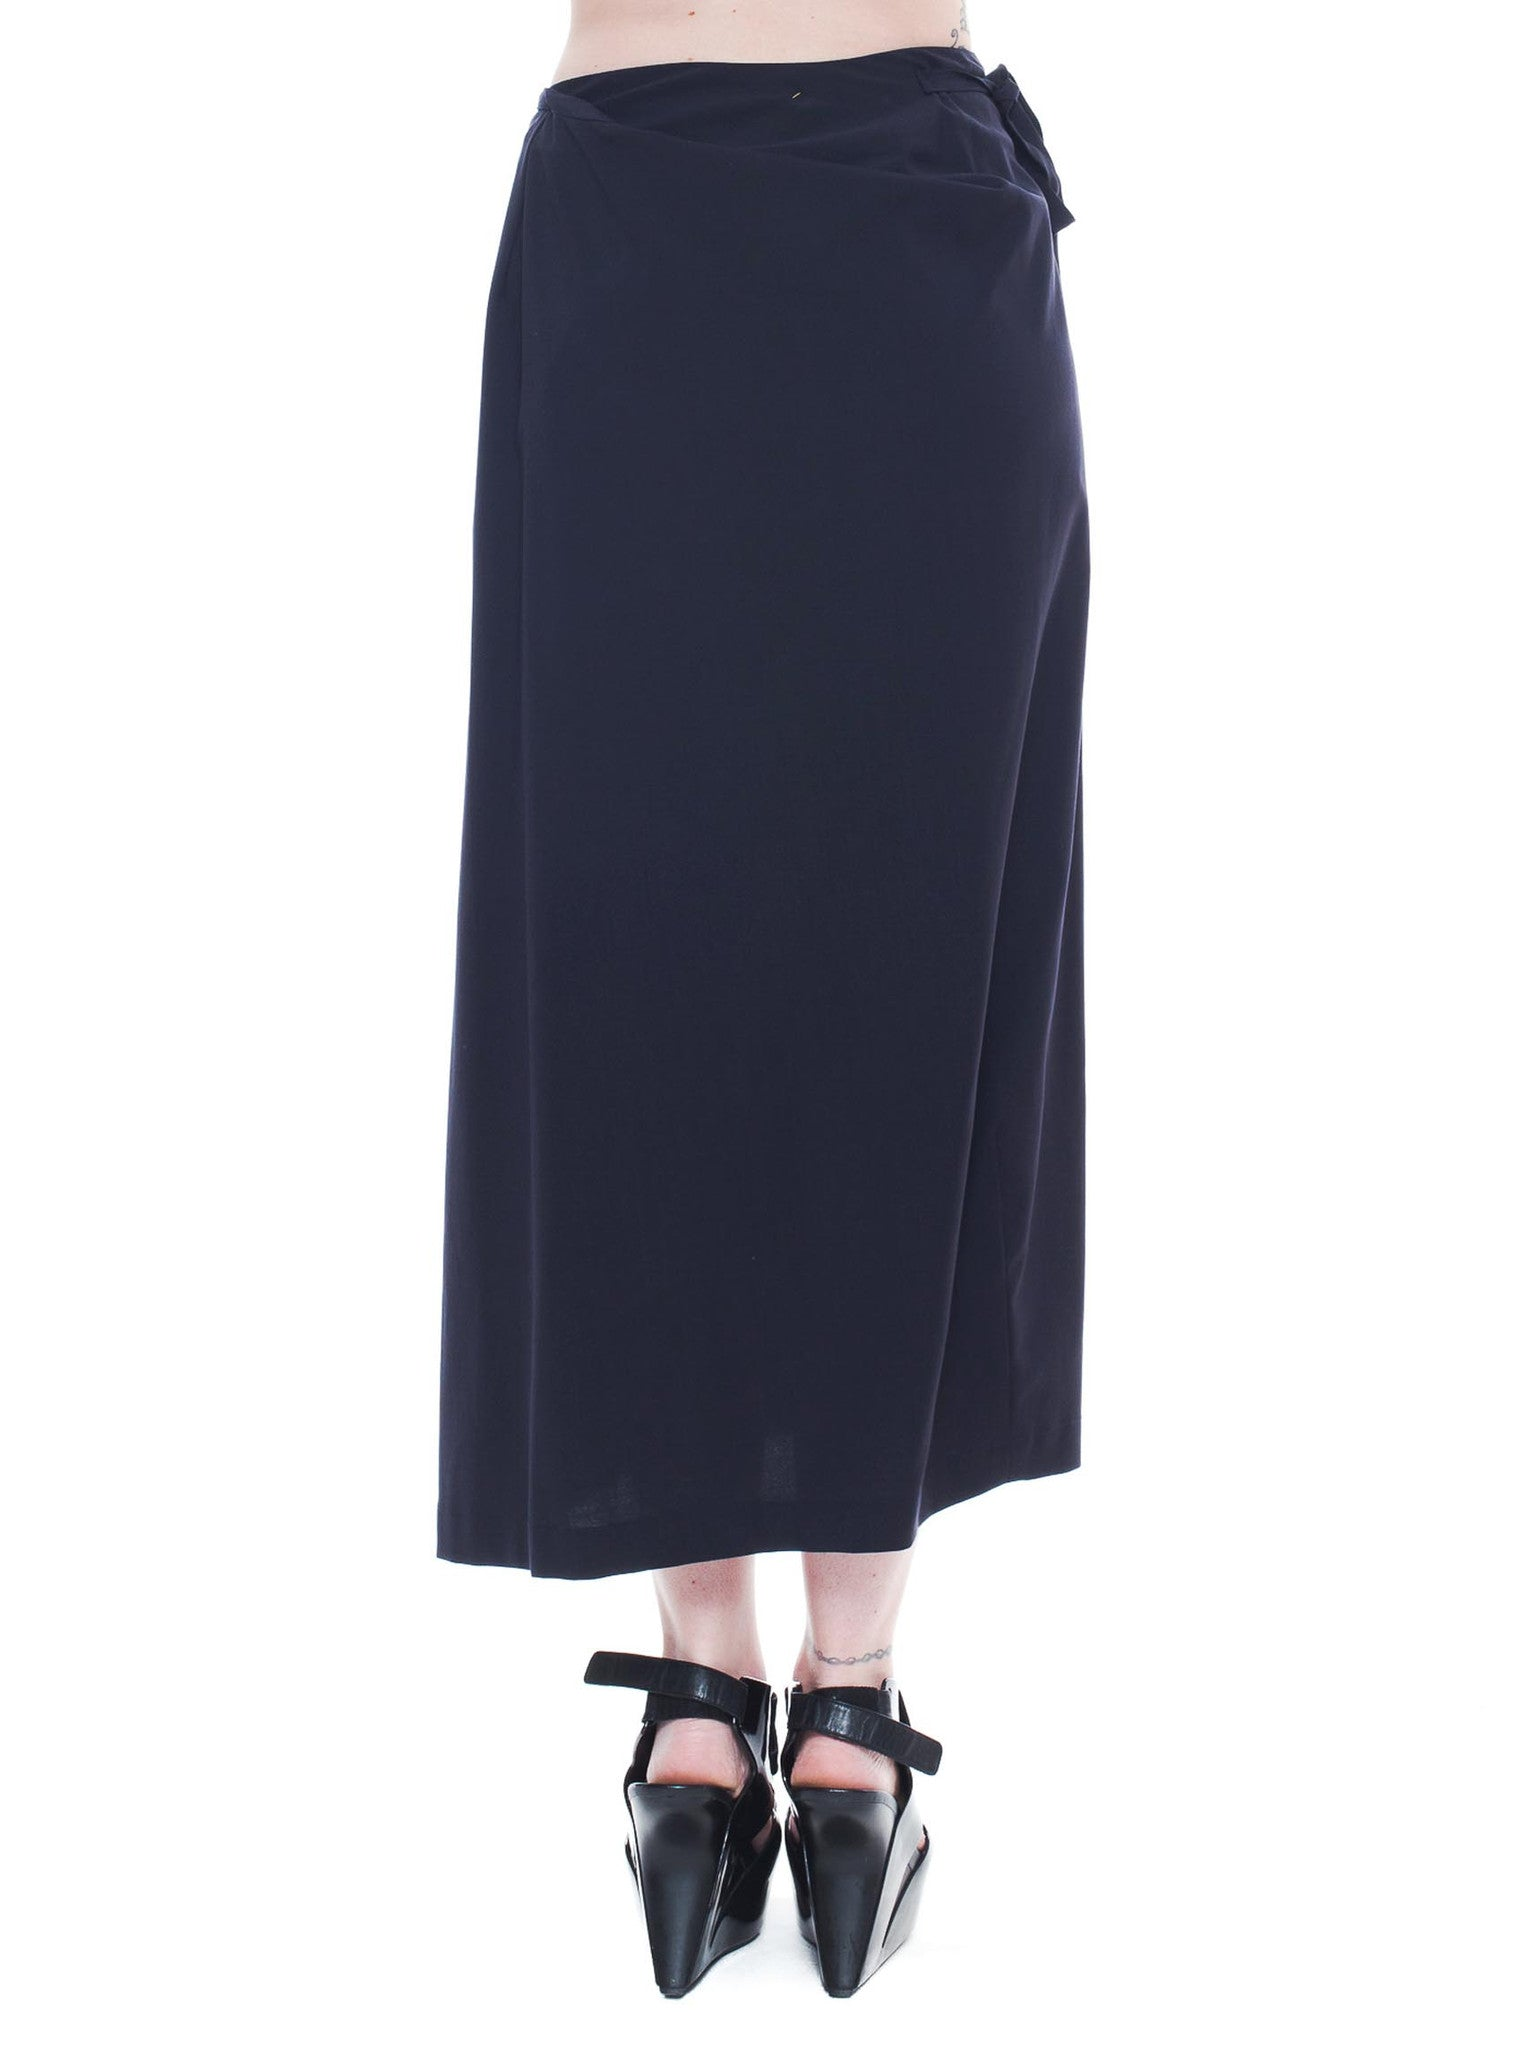 1980S COMME DES GARCONS Navy Wool Deconstructed Wrap Skirt